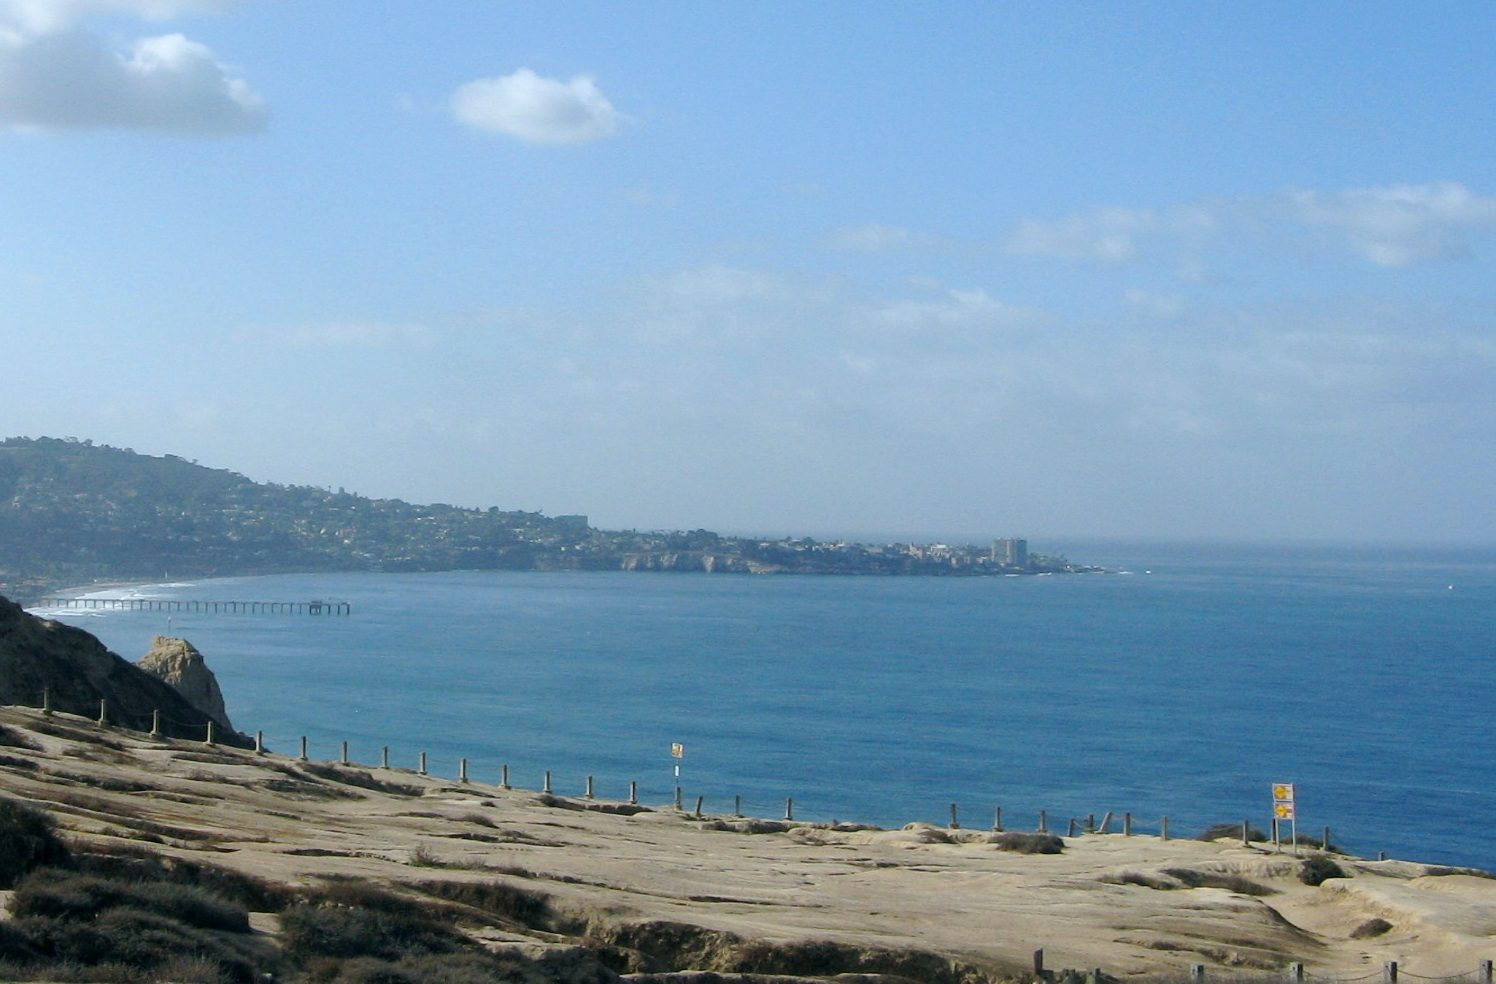 View from Torrey Pines Gliderport in La Jolla